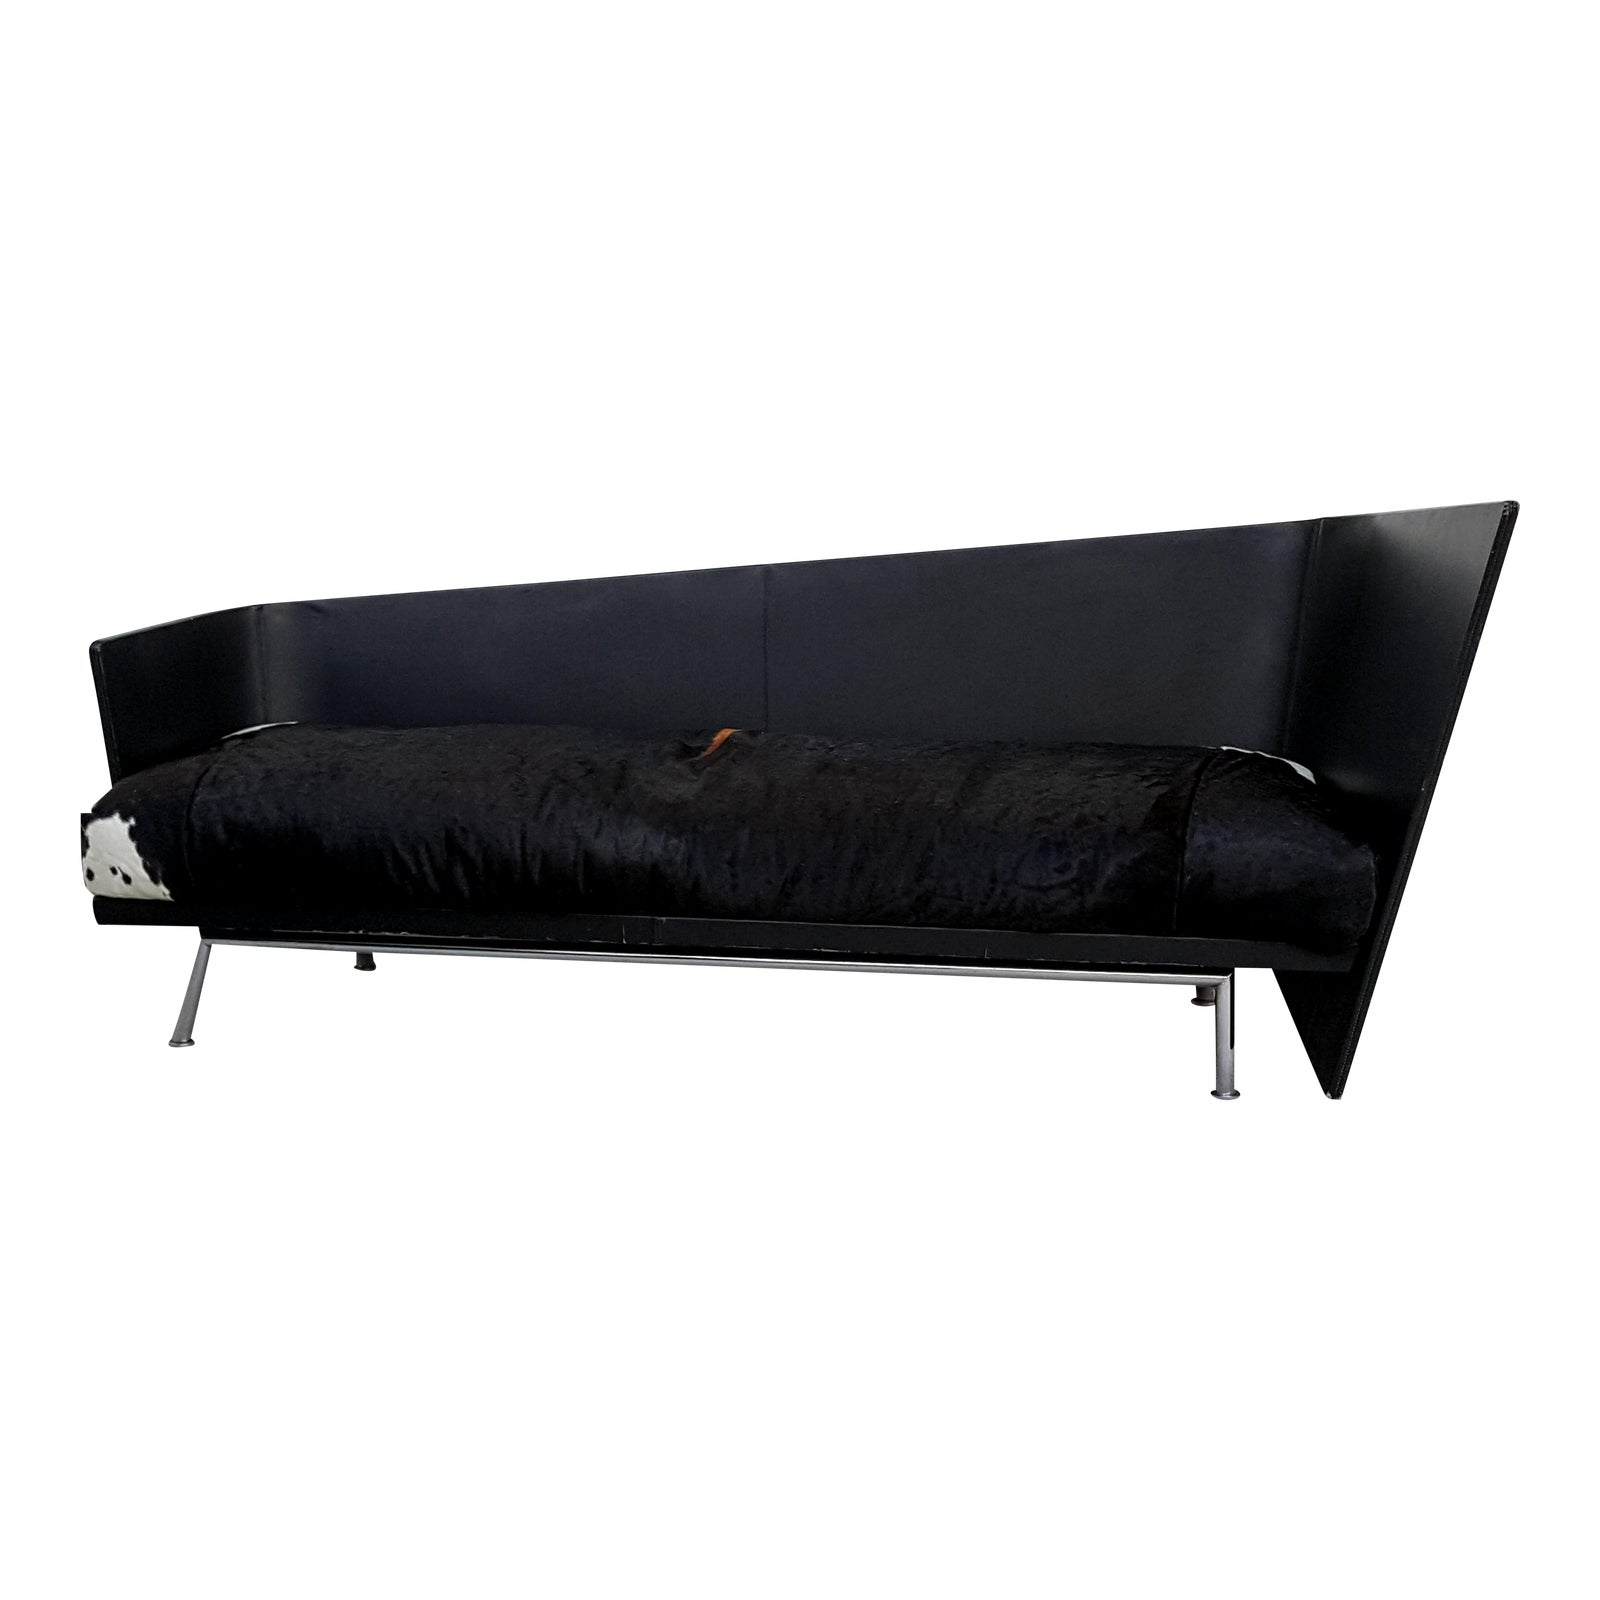 Sectional Couches Las Vegas Nv: Felicirossi Asymmetrical Leather Wrapped Argentine Cowhide